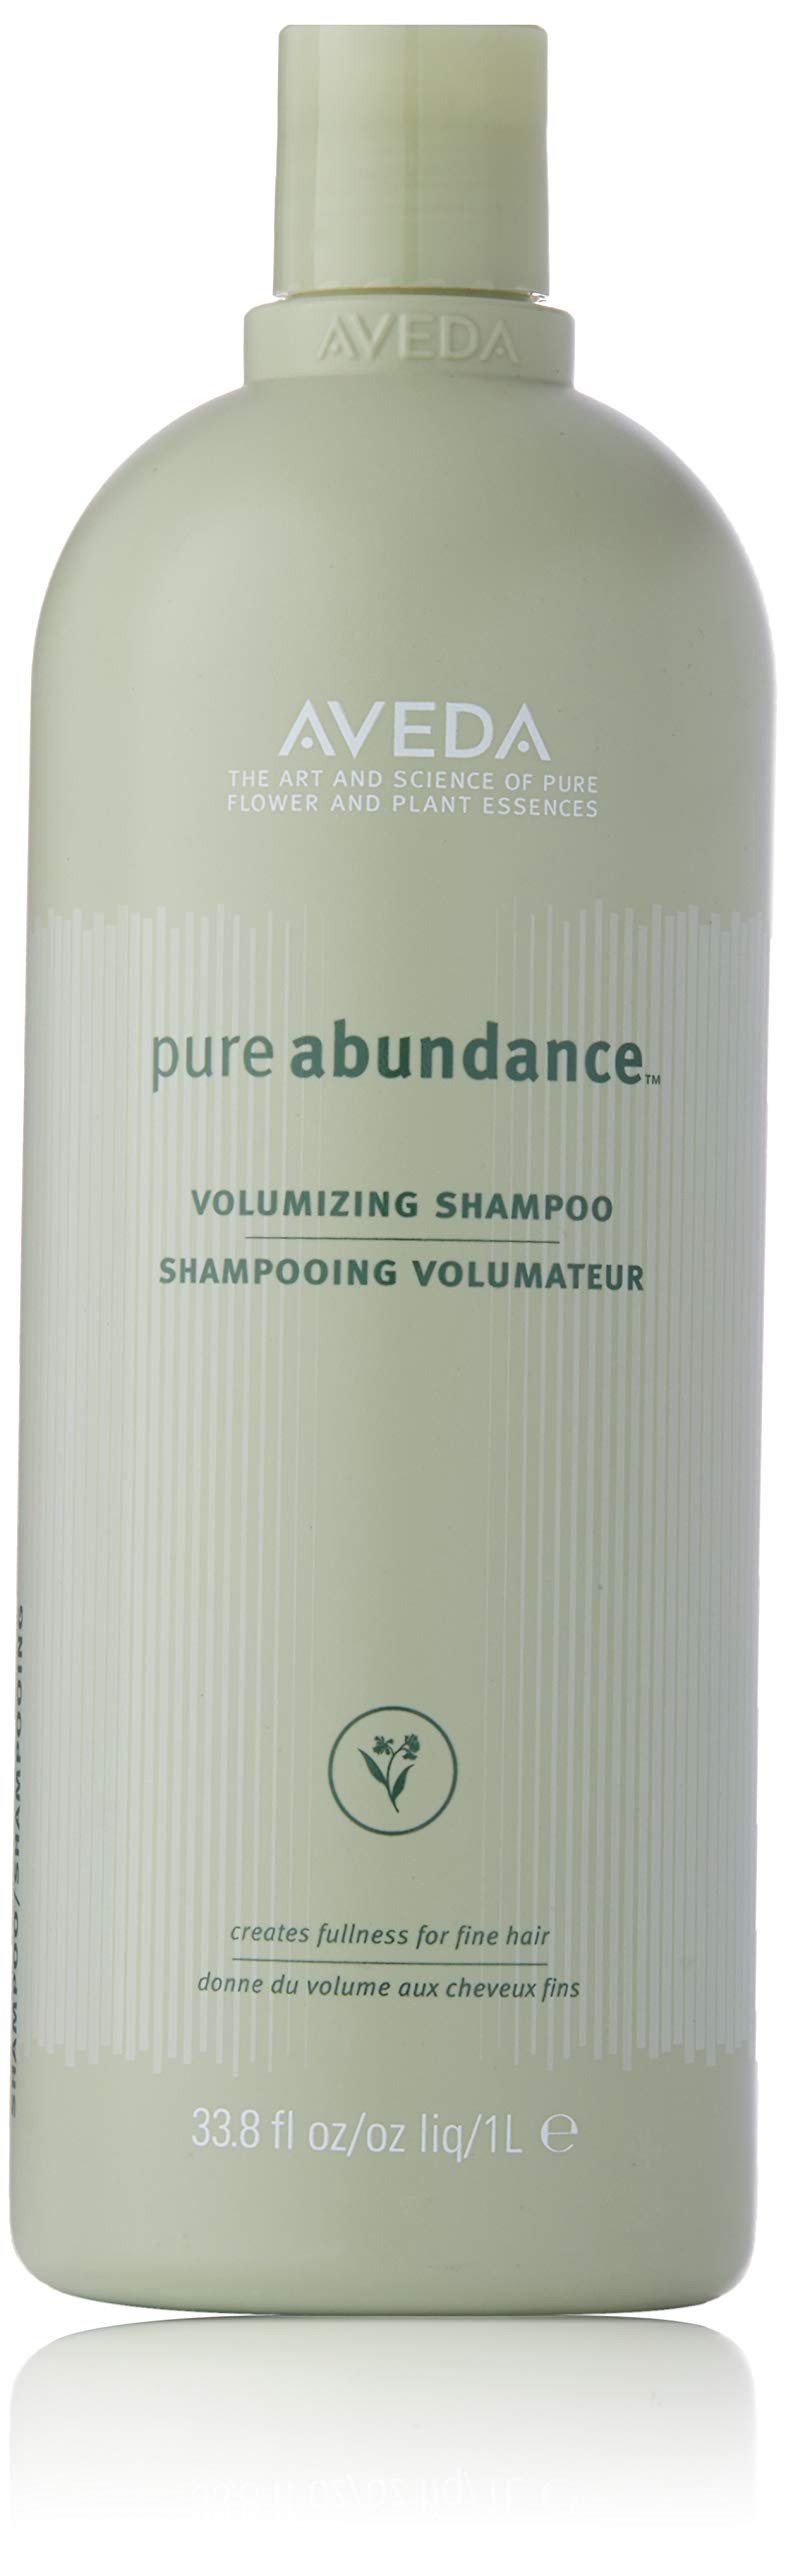 Aveda By Aveda - Pure Abundance Volumizing Shampoo 33.8 Oz by AVEDA